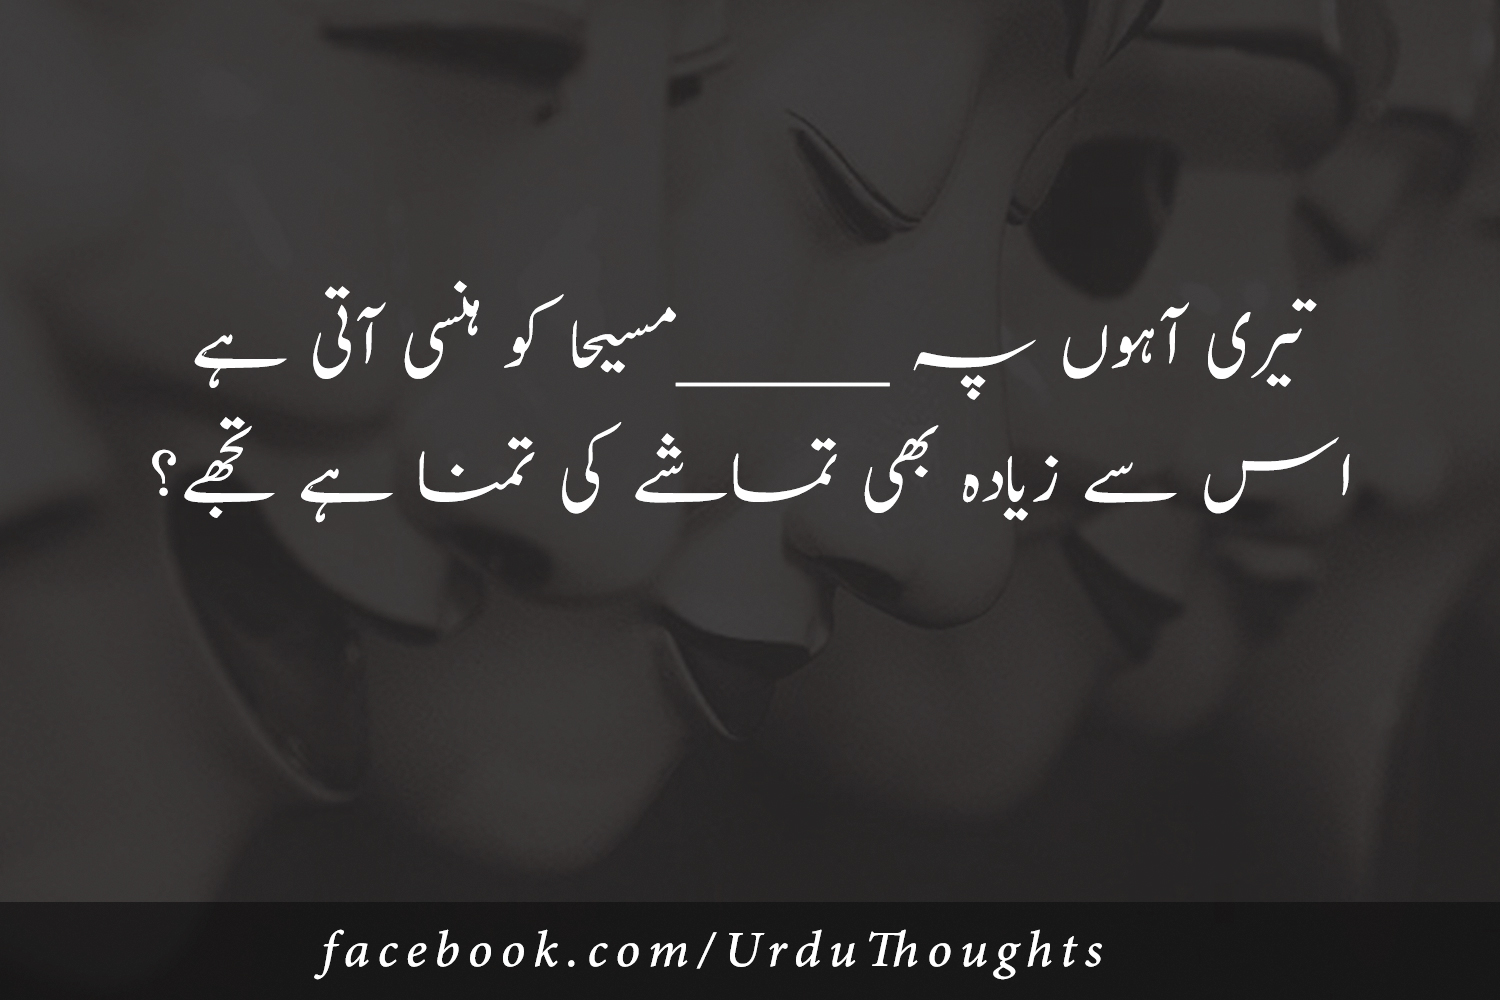 Sad Wallpapers With Quotes In Urdu Awesome And Sad Urdu Poetry Images 2 Line Urdu Thoughts